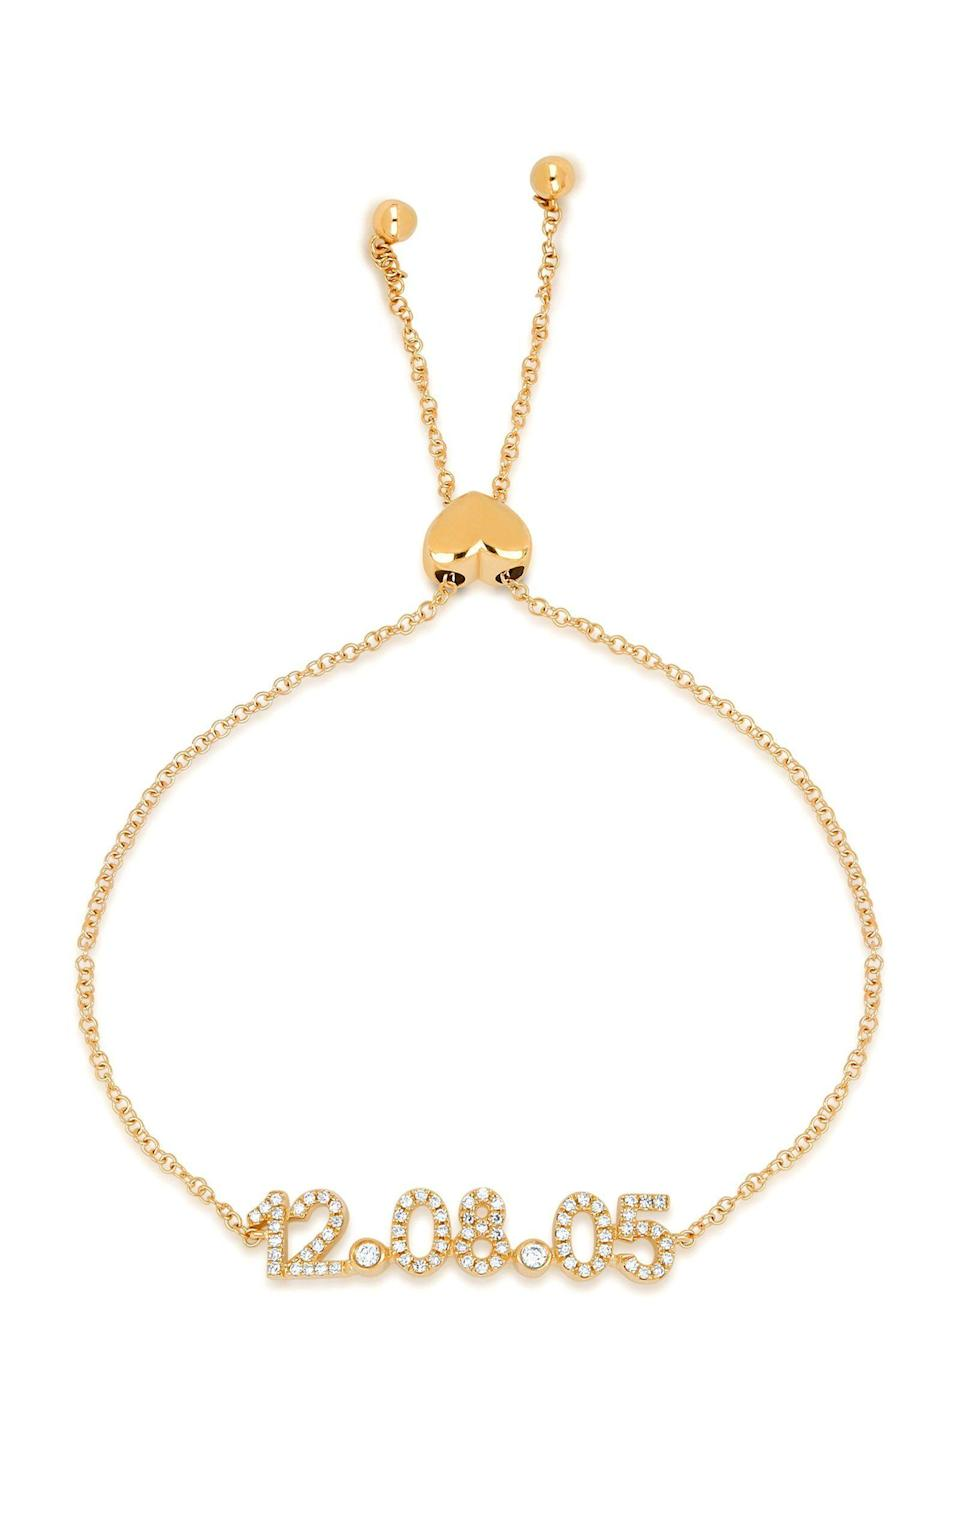 """<p><strong>EF Collection</strong></p><p>modaoperandi.com</p><p><strong>$1295.00</strong></p><p><a href=""""https://go.redirectingat.com?id=74968X1596630&url=https%3A%2F%2Fwww.modaoperandi.com%2Fwomen%2Fp%2Fef-collection%2F14k-gold-diamond-custom-date-bolo-bracelet%2F473723&sref=https%3A%2F%2Fwww.harpersbazaar.com%2Fwedding%2Fg34585586%2Fpersonalized-wedding-gift-ideas%2F"""" rel=""""nofollow noopener"""" target=""""_blank"""" data-ylk=""""slk:SHOP NOW"""" class=""""link rapid-noclick-resp"""">SHOP NOW</a></p><p>A gift this classic—and personal—is foolproof. After all, diamonds are a girl's best friend, and the wedding date is one that she'll want to wear all year long. </p>"""